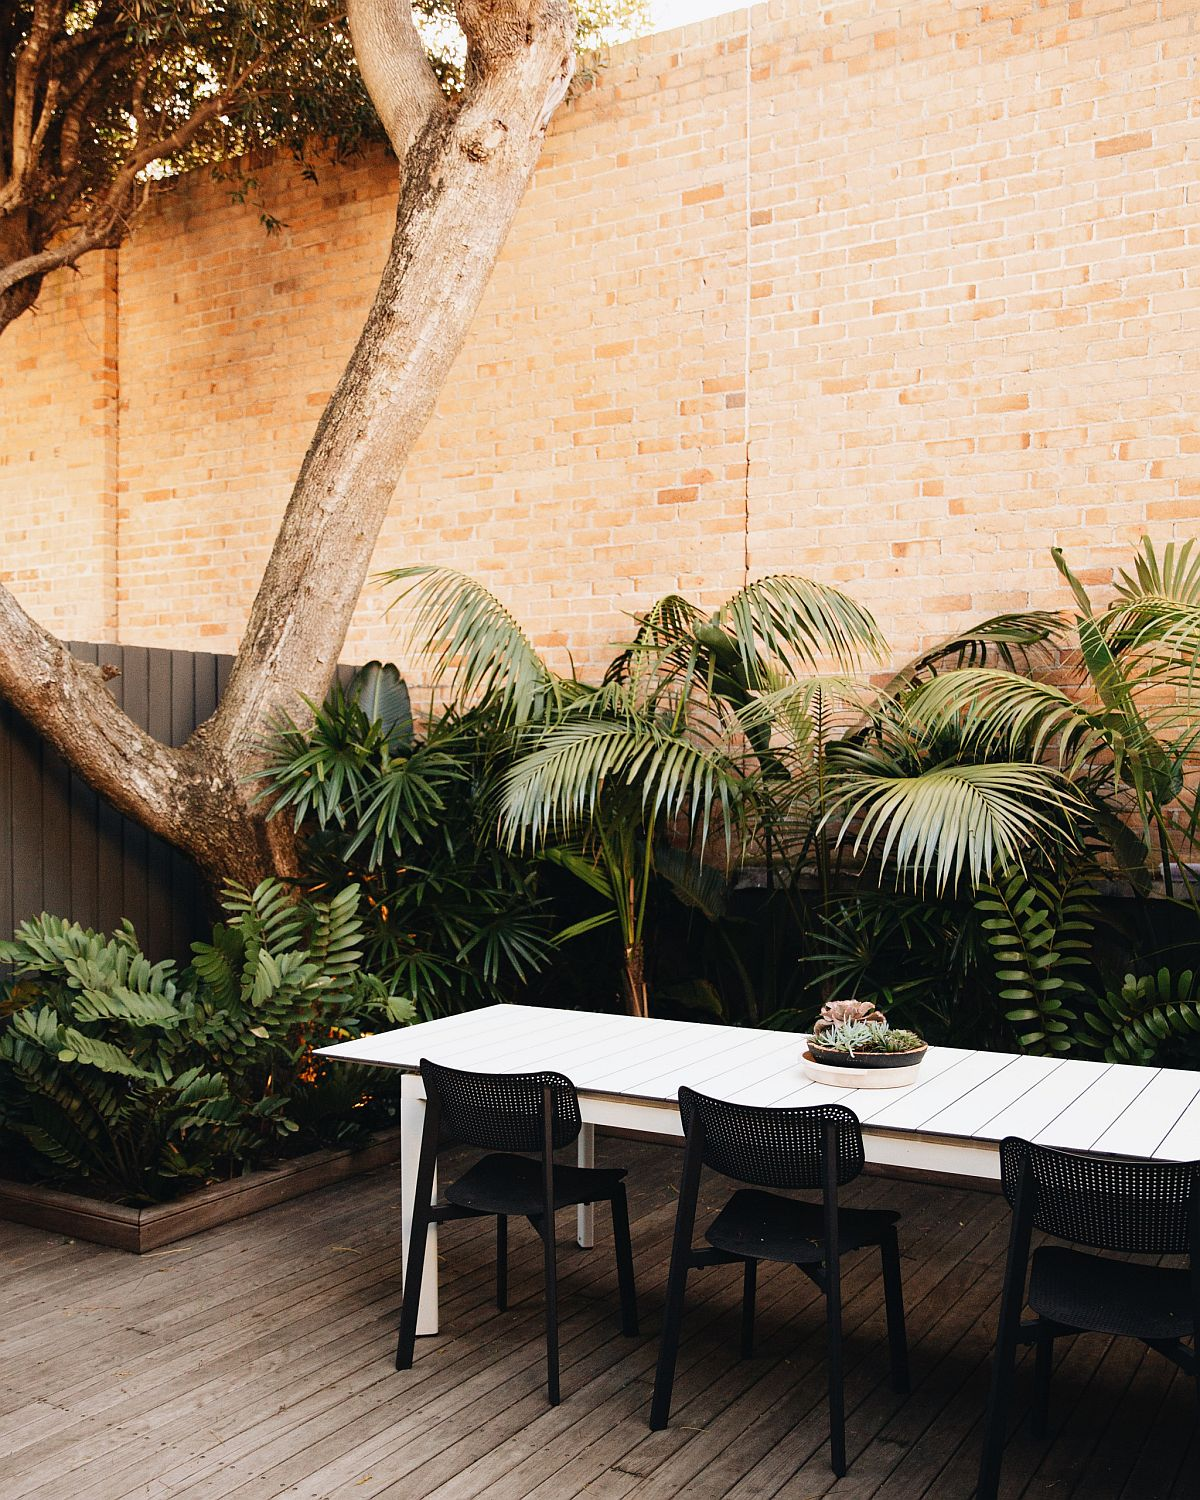 Small contemporary decor with brick wall backdrop and ample greenery all around